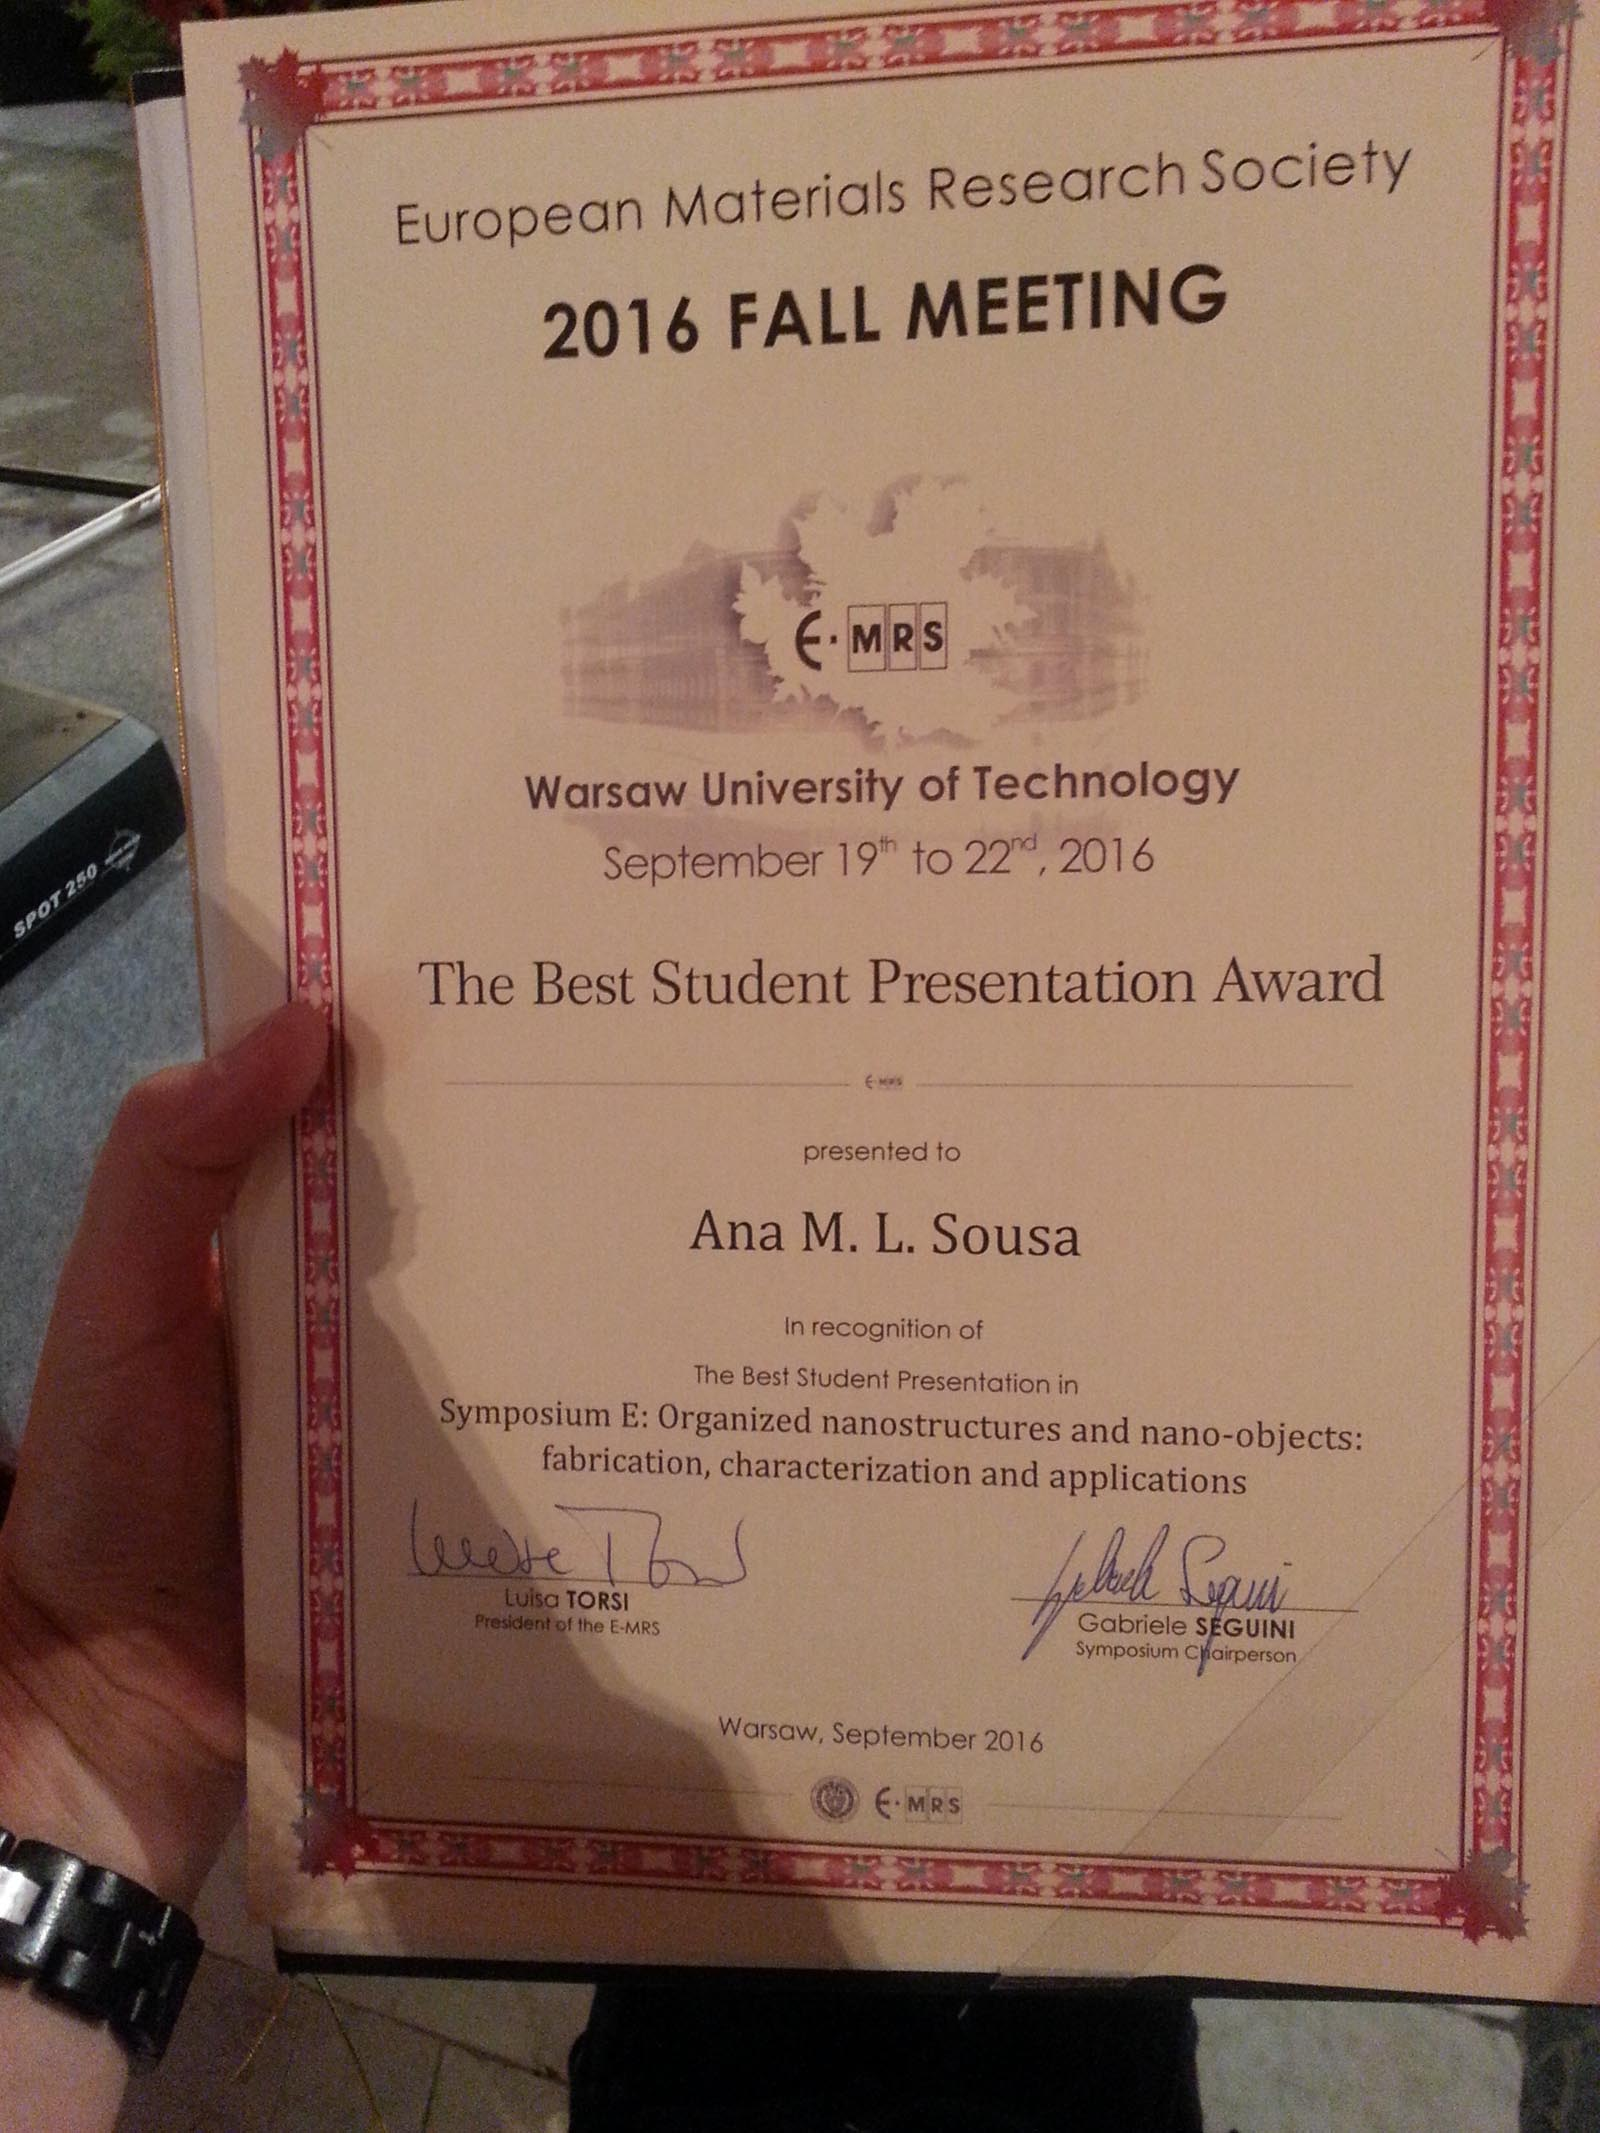 Ana wins best presentation award at e-mrs.